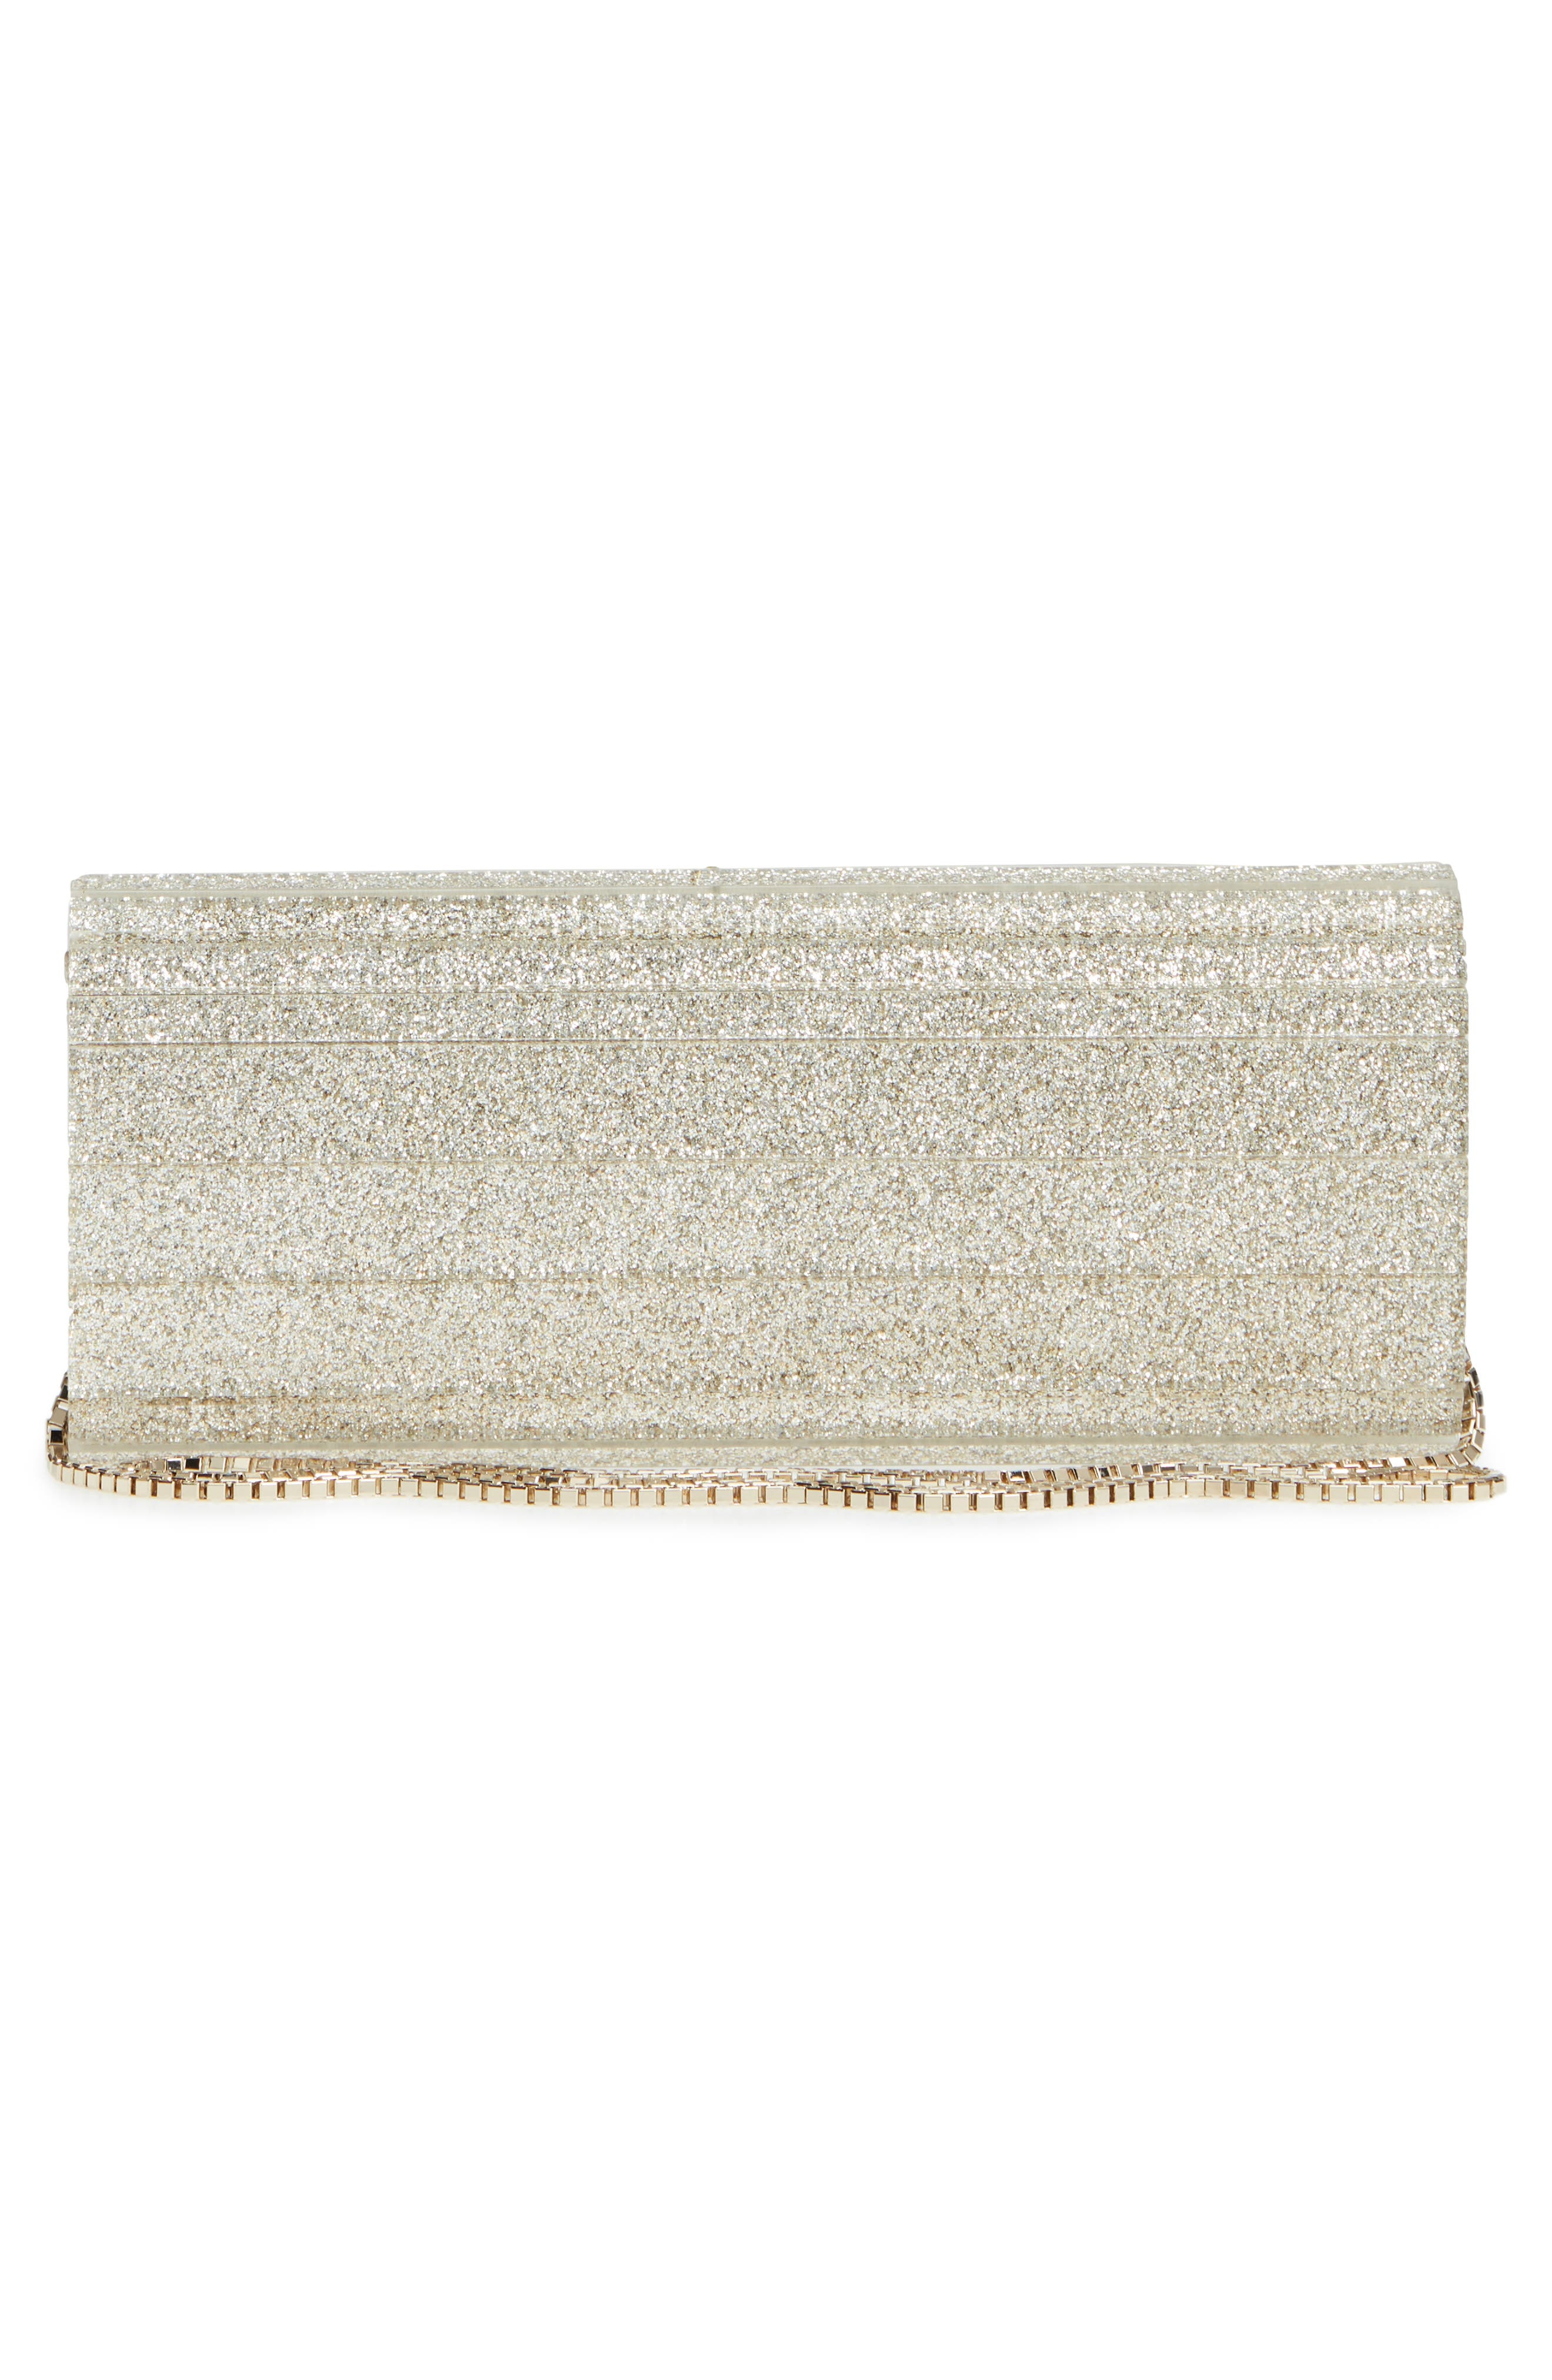 JIMMY CHOO, 'Sweetie' Clutch, Alternate thumbnail 3, color, CHAMPAGNE GLITTER